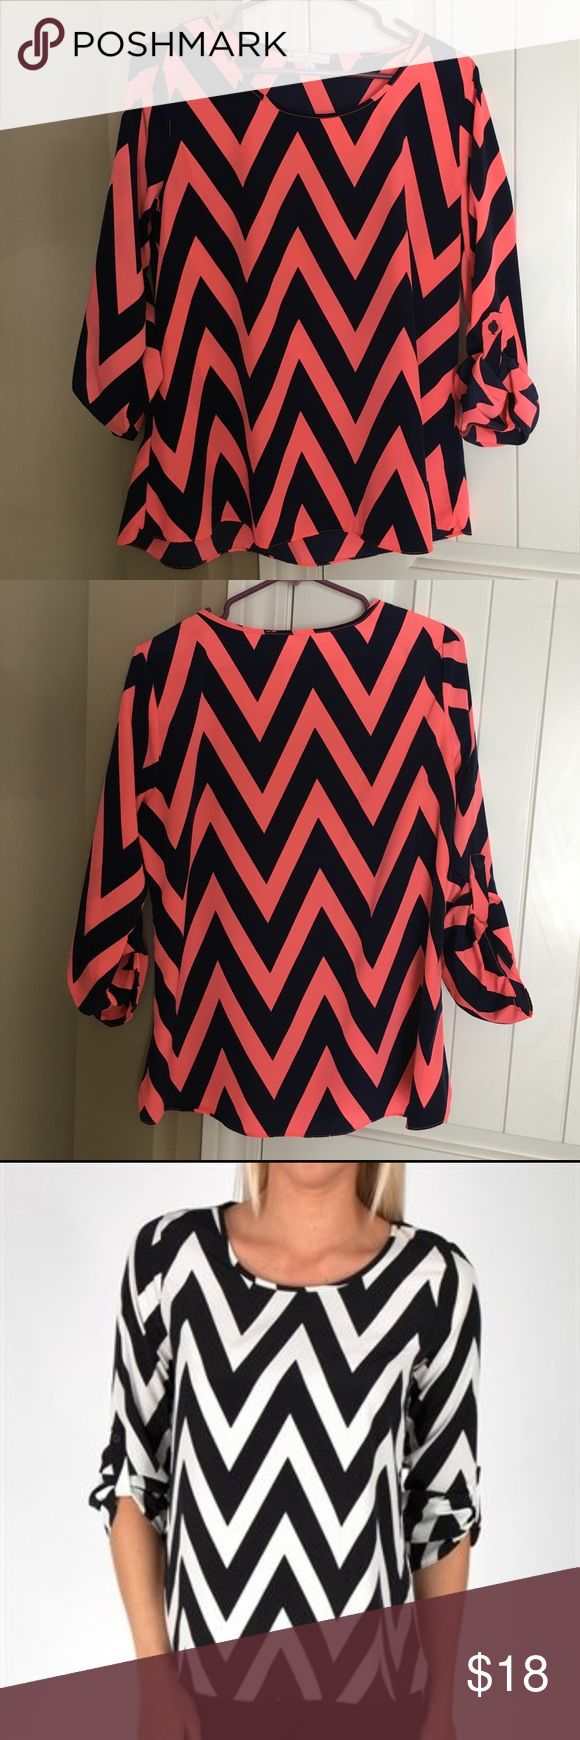 Chevron Top Coral and dark navy chevron top. Loose fitting, sleeves have a button to roll them up. Very comfortable. Gently worn. Bought from Von Maur. 100% Polyester. Moa Moa Tops